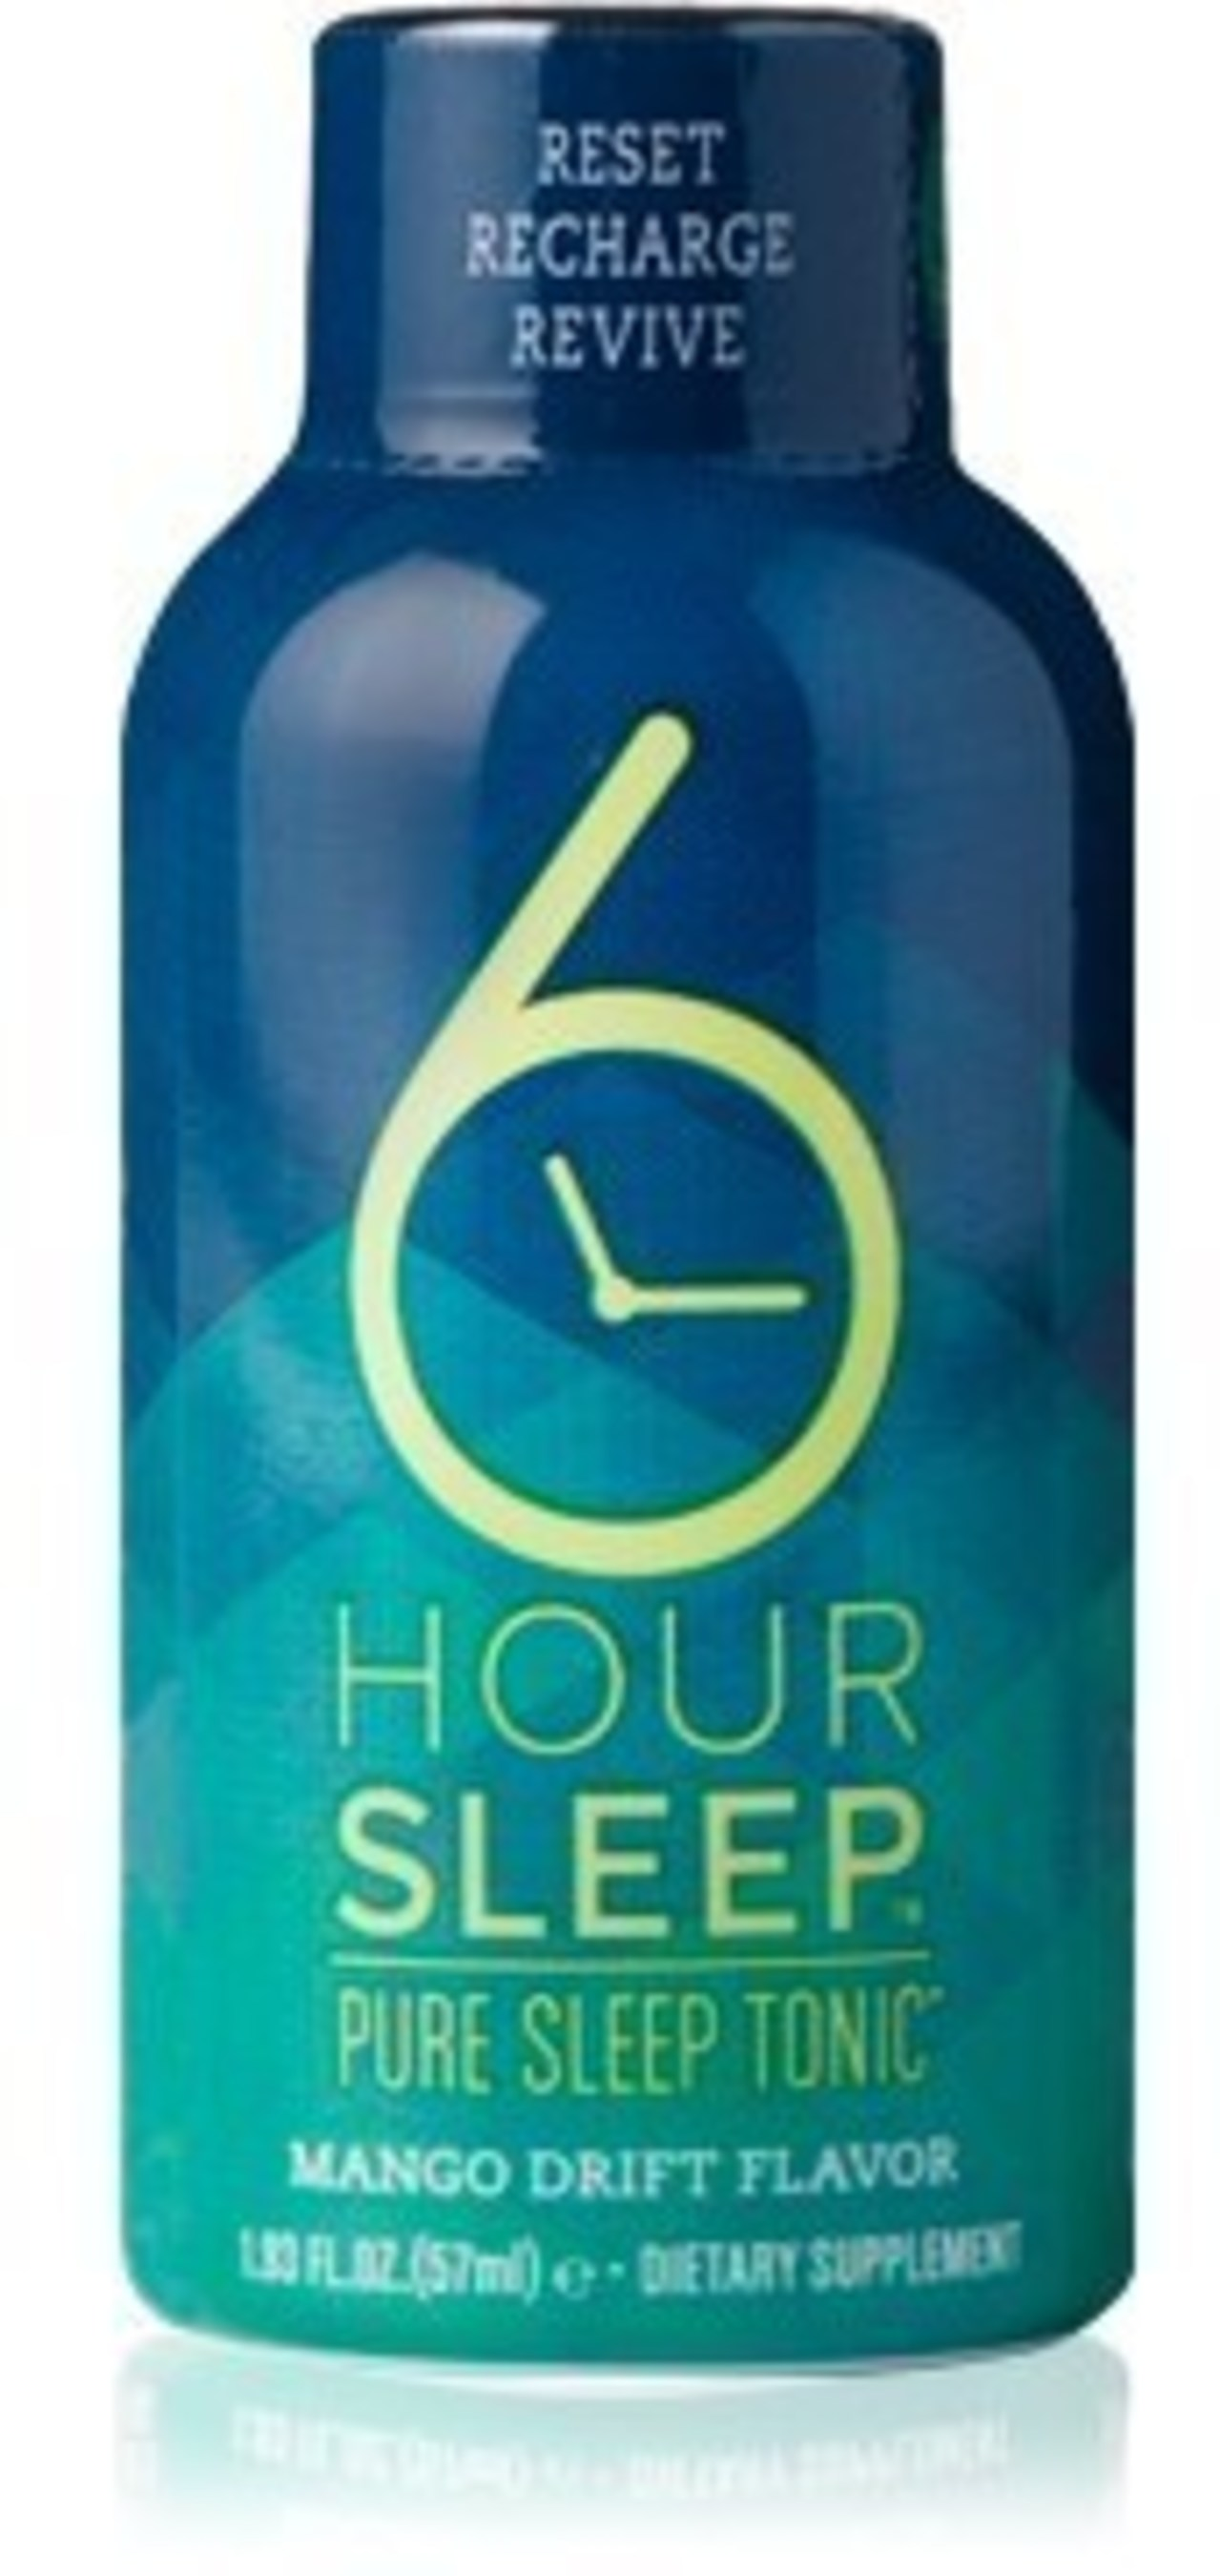 Innovative Sleep Tonic 6 Hour Sleep Announces Launch Offering the Possibility of Quicker, Deeper